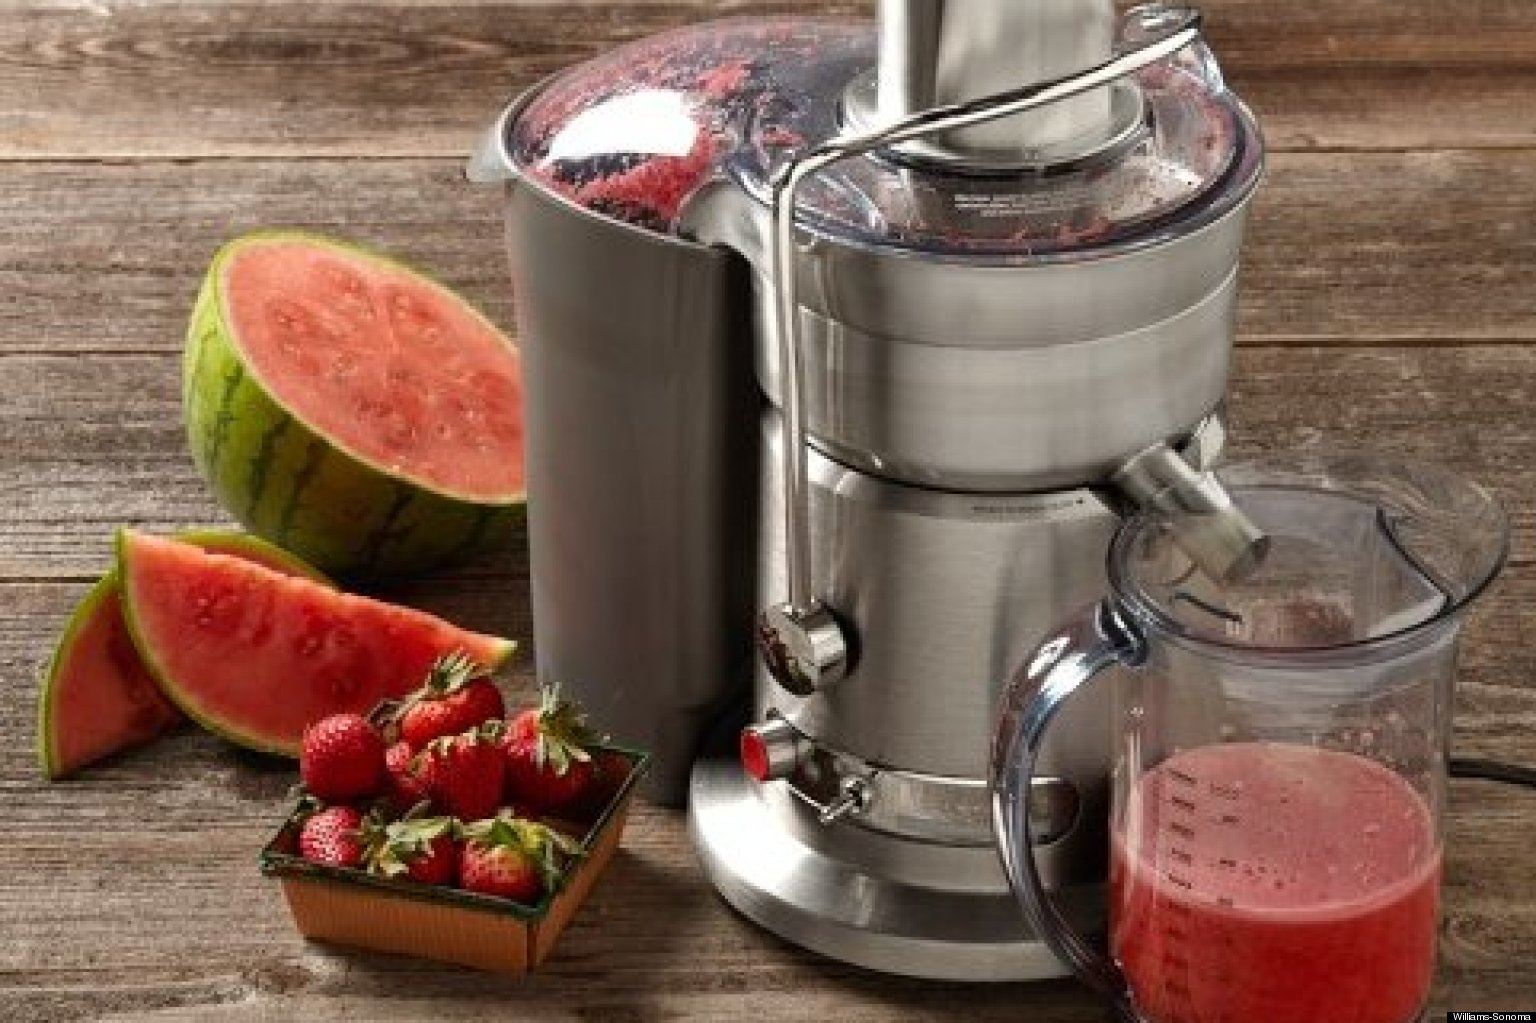 Cold Press Juicer Vs Juice Extractor : Juicer Types: The Difference Between Cold Press Juicers vs ...